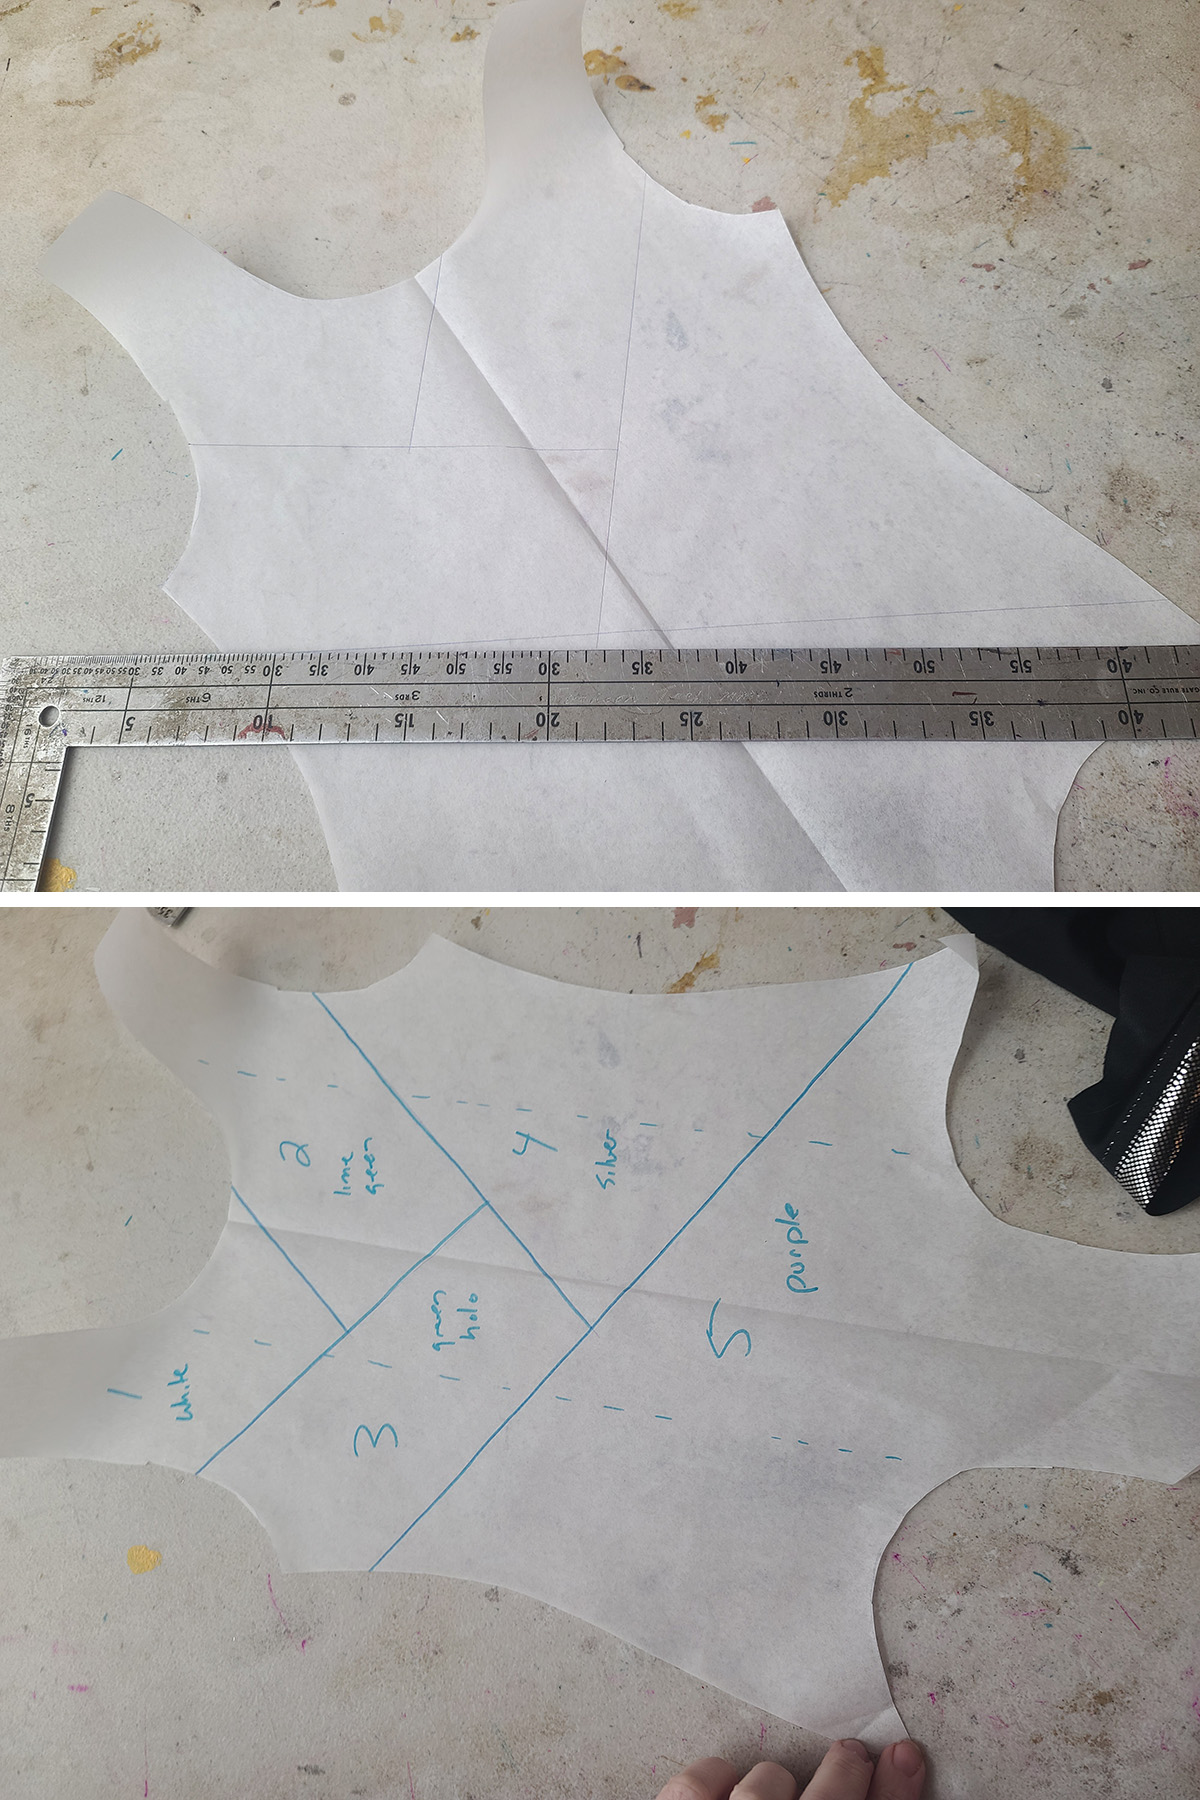 A two part compilation image showing design lines being drawn onto a leotard front pattern.